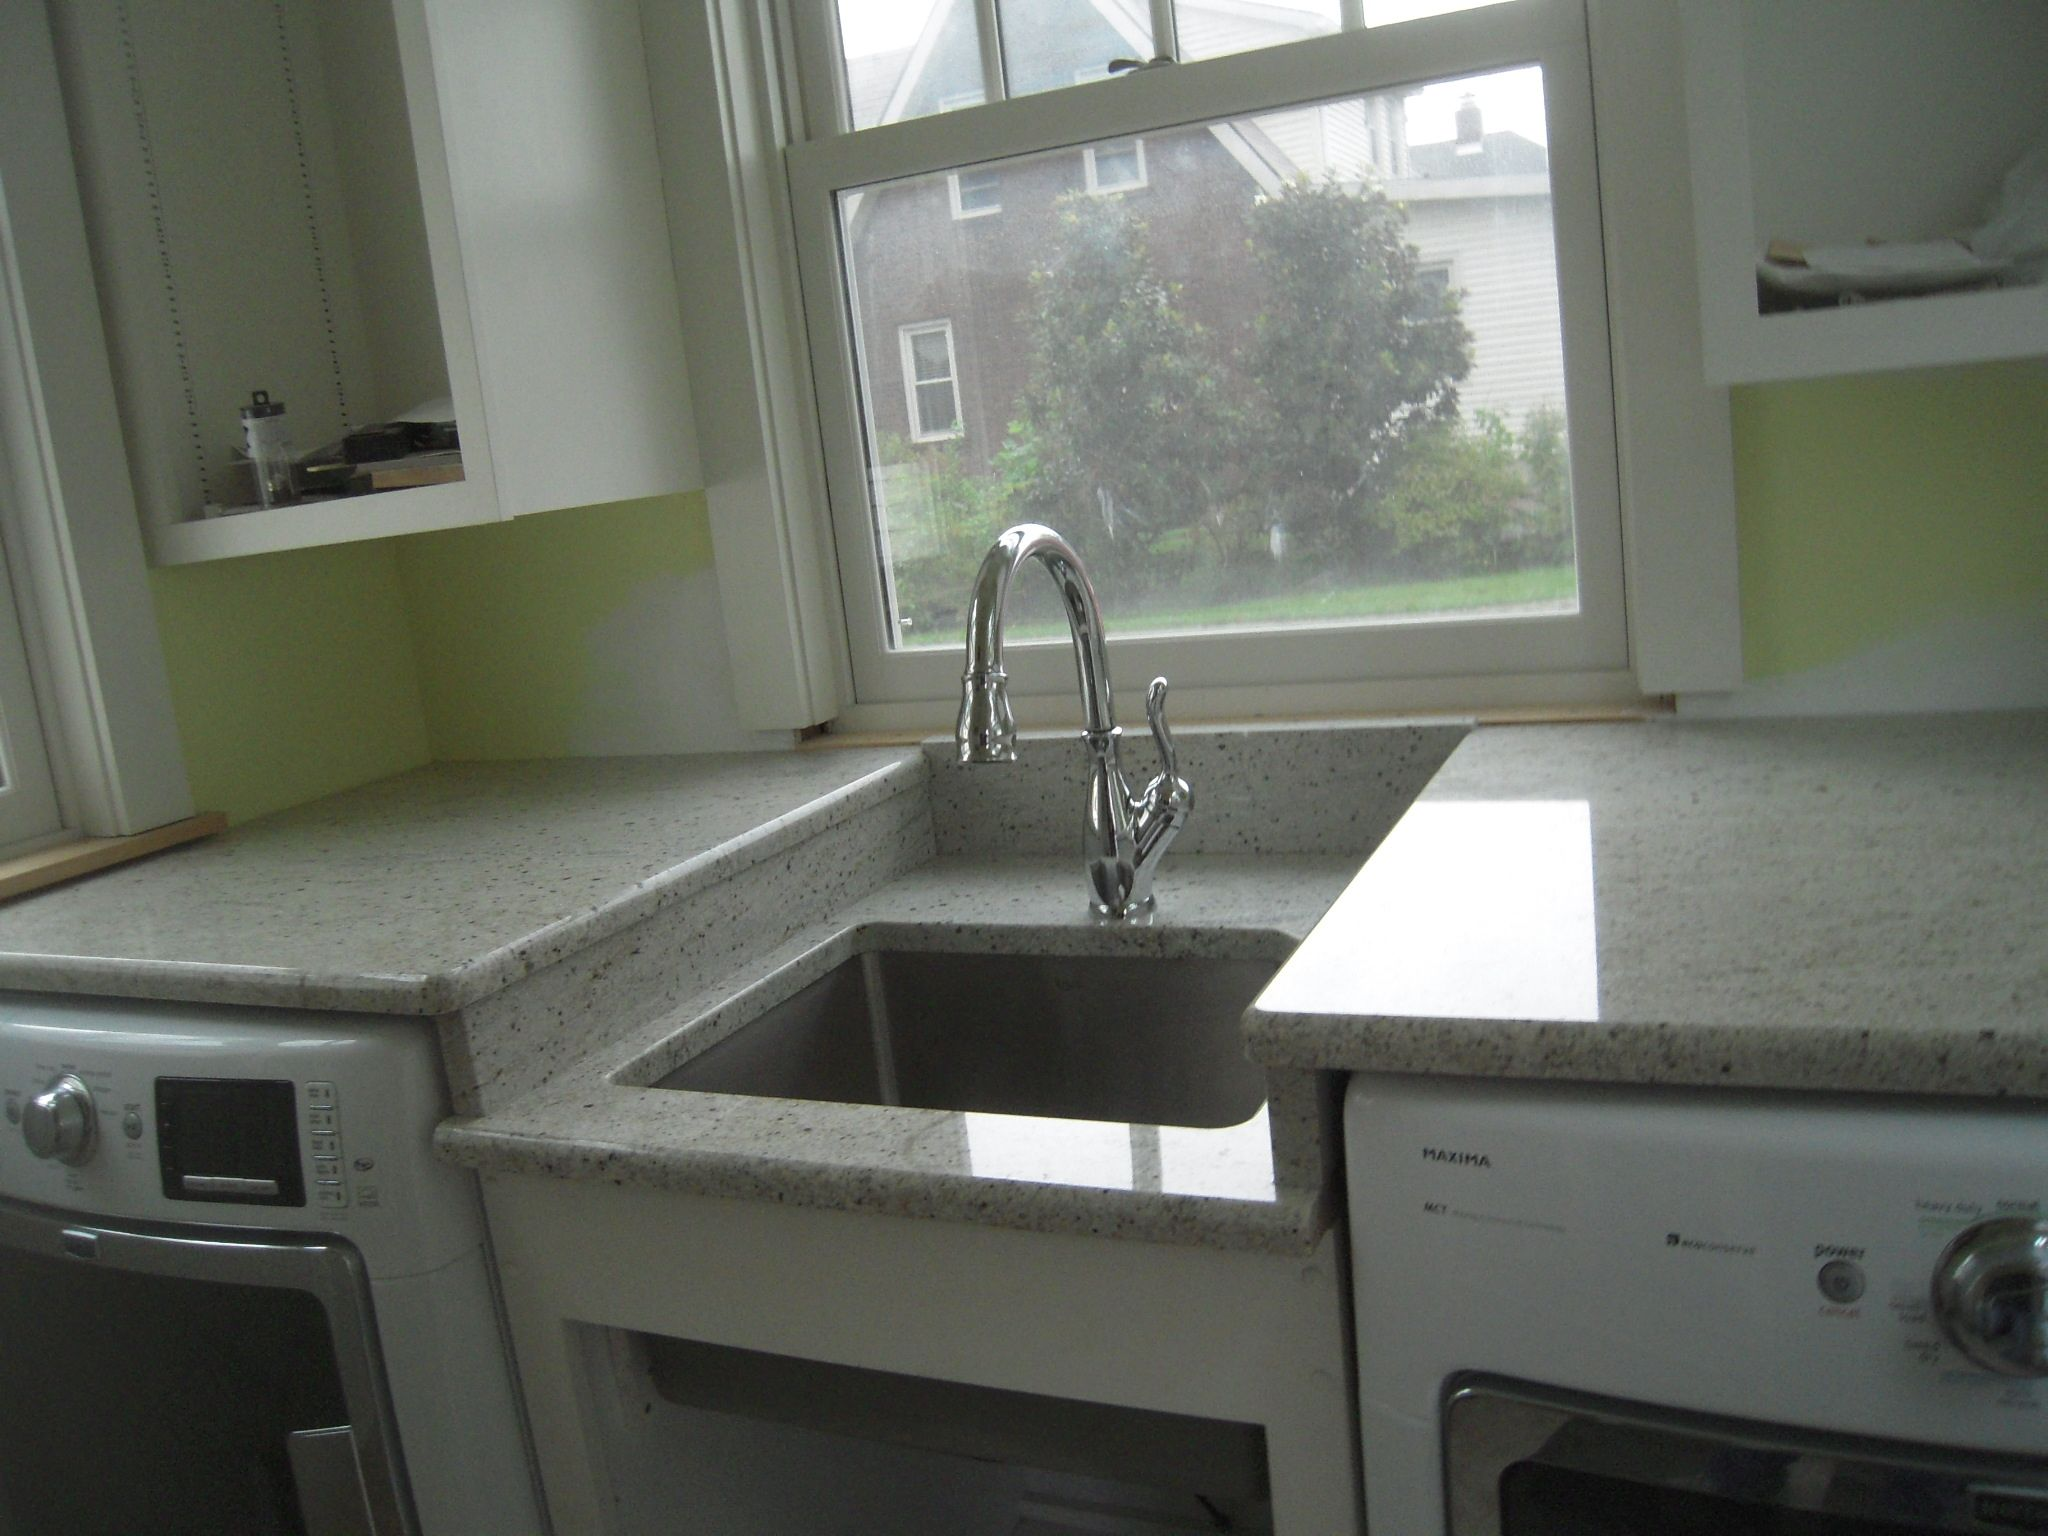 Turn Utility Sink Into Folding Surface Countertop Traditional Laundry Room Other Metro Creat Laundry Room Design Laundry Room Remodel Laundry Room Sink